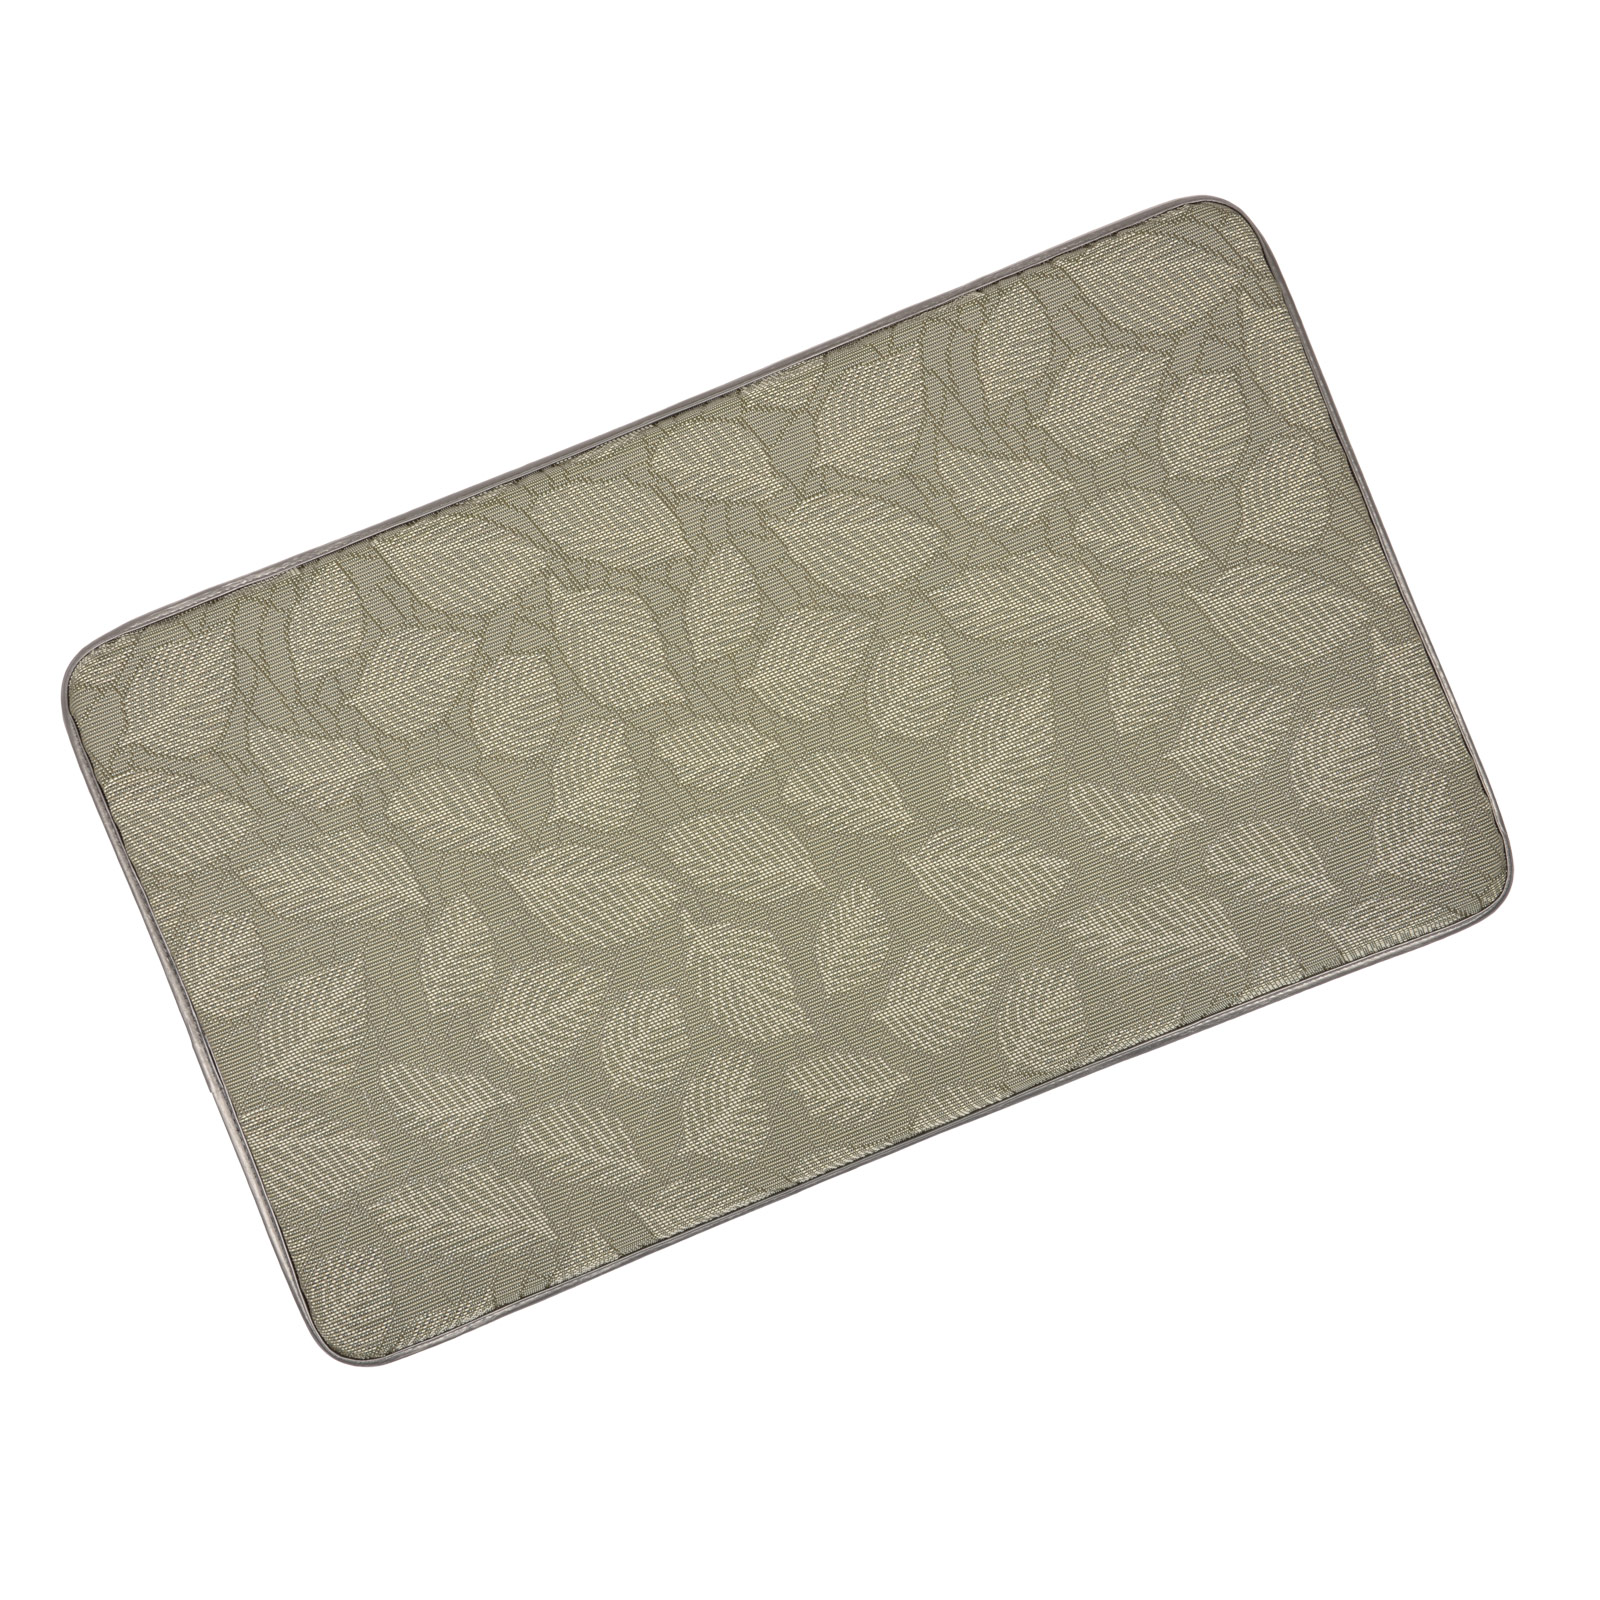 Memory foam anti fatigue anti stress comfort home kitchen for House floor mat philippines